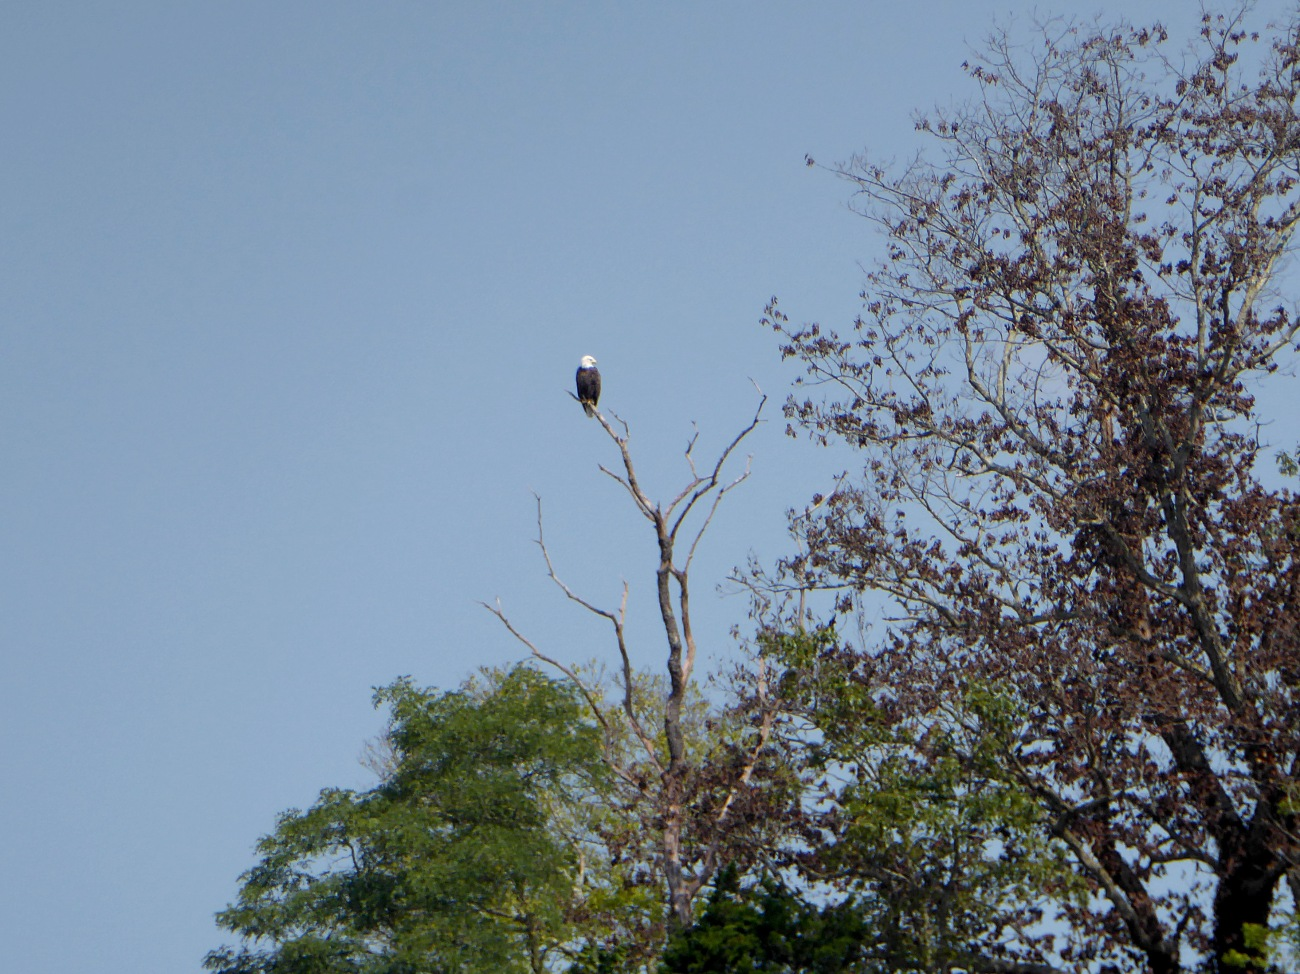 20170826_114133_Bald eagle guarding the entrance to Pitts Creek